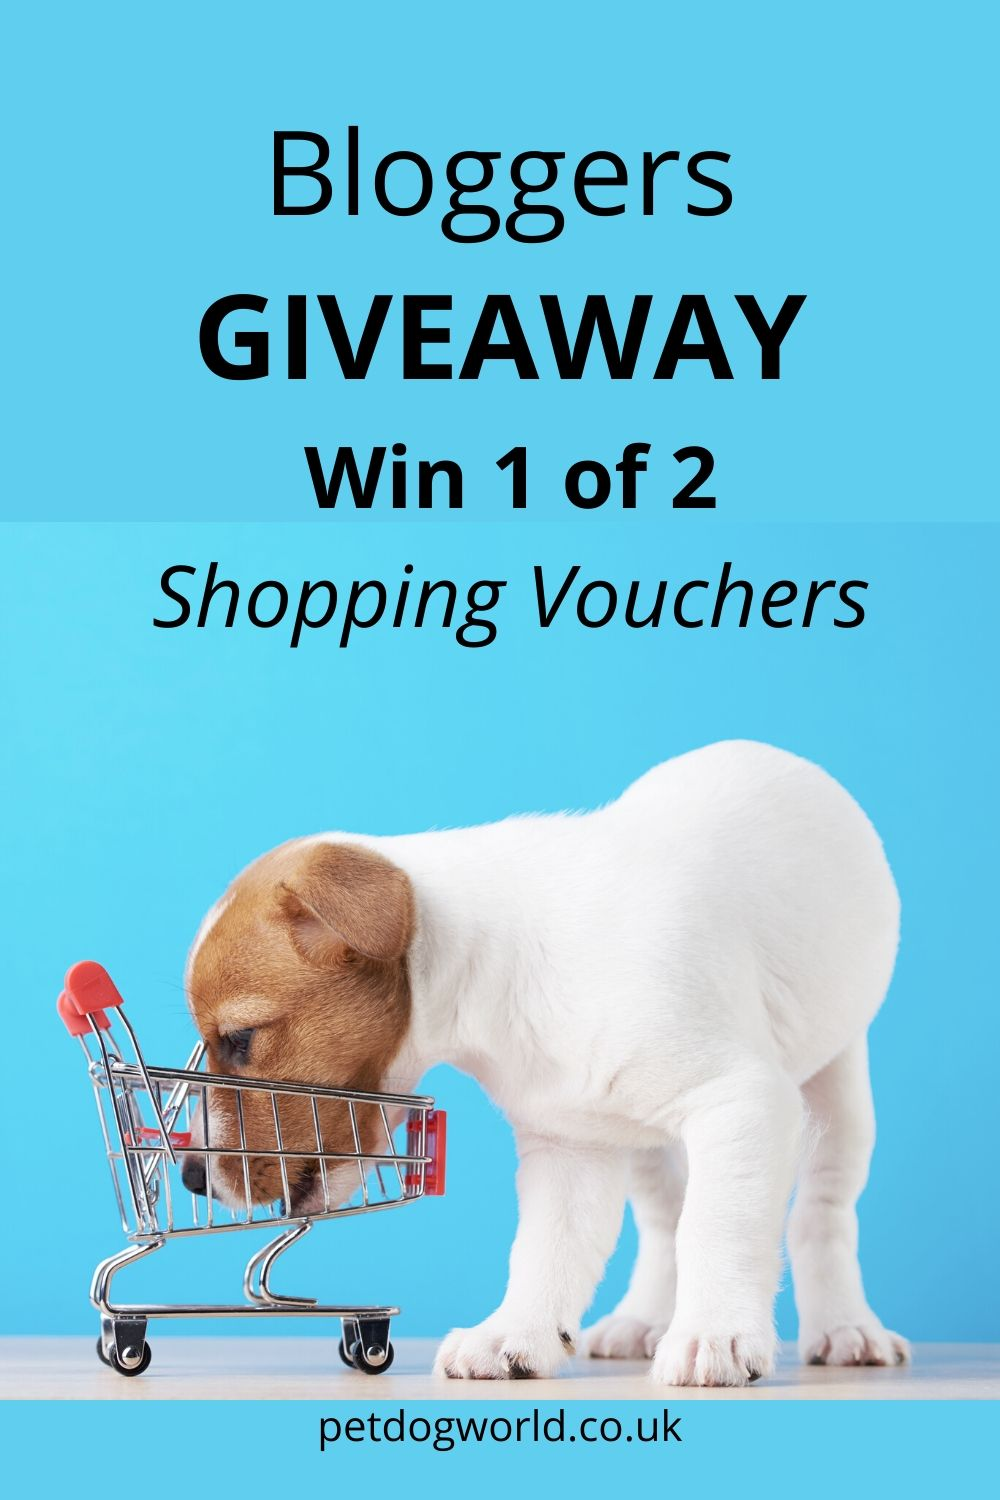 As so many of us are struggling financially right now, Pet Dog World has teamed up with some fellow bloggers for a great giveaway. We have over £100 worth of supermarket vouchers to help two lucky winners with their grocery shopping!